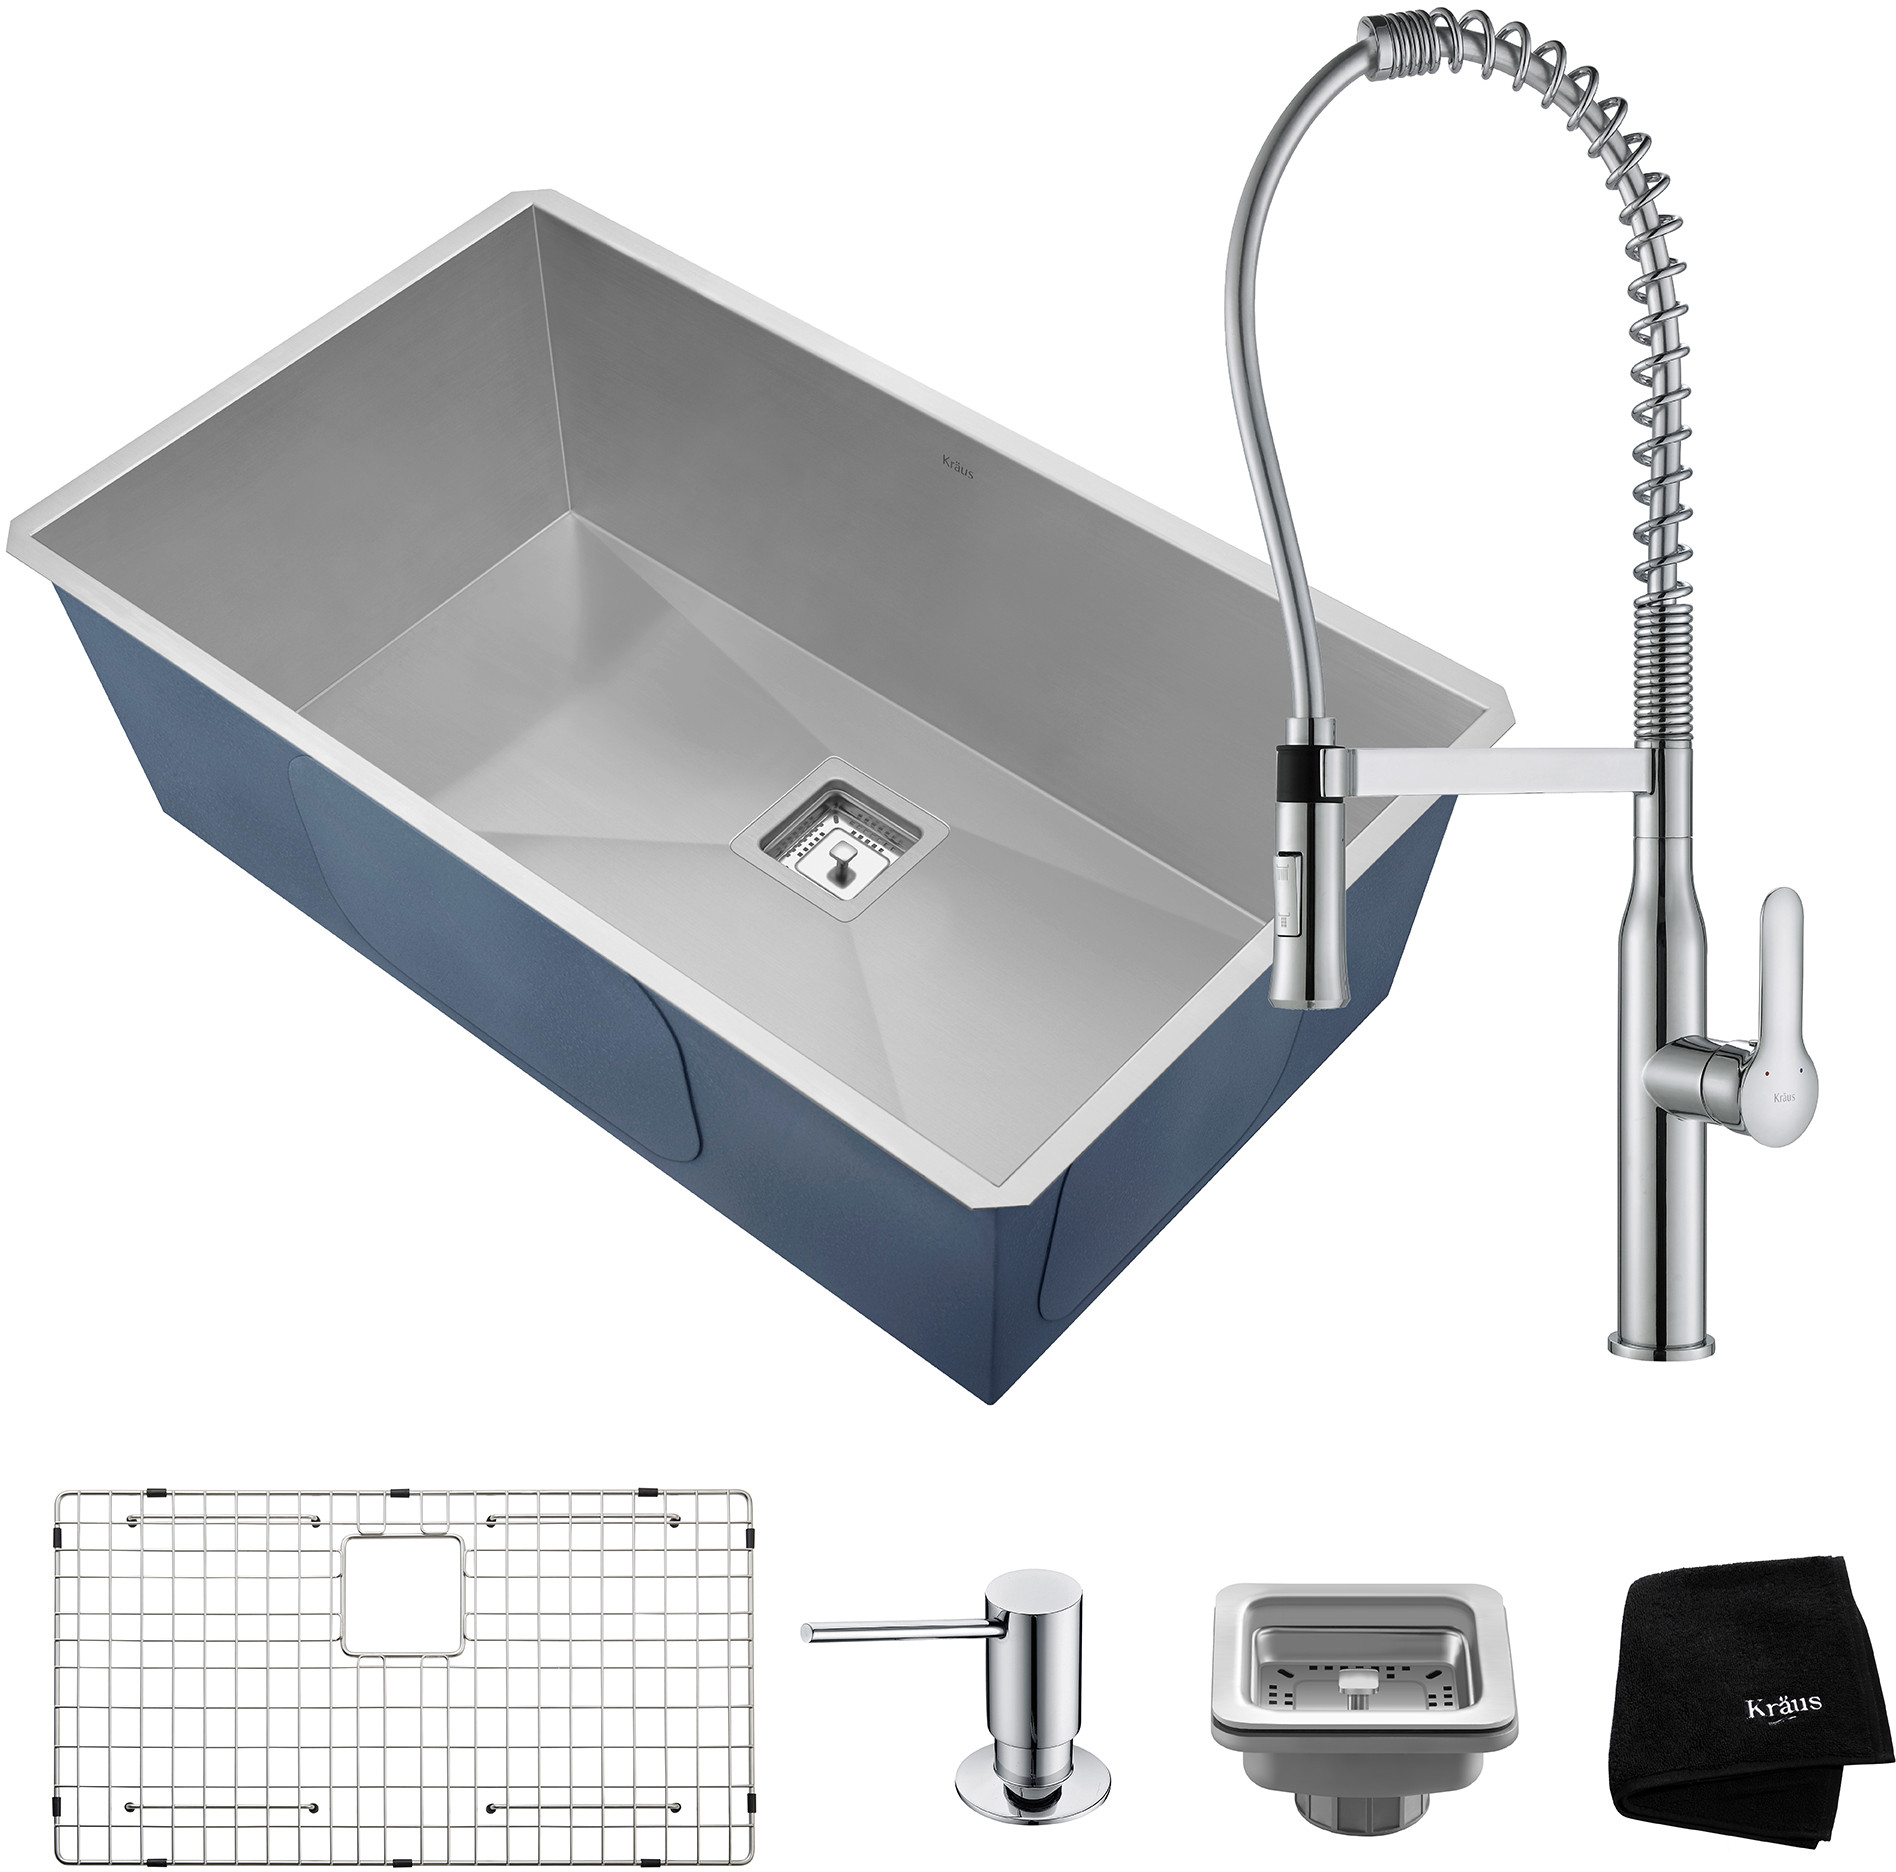 Kraus Khu32165041ch 31 Inch Undermount Kitchen Sink And Commercial Faucet Combo With Noisedefend 16 Gauge Stainless Steel And Commercial Grade Finish Chrome